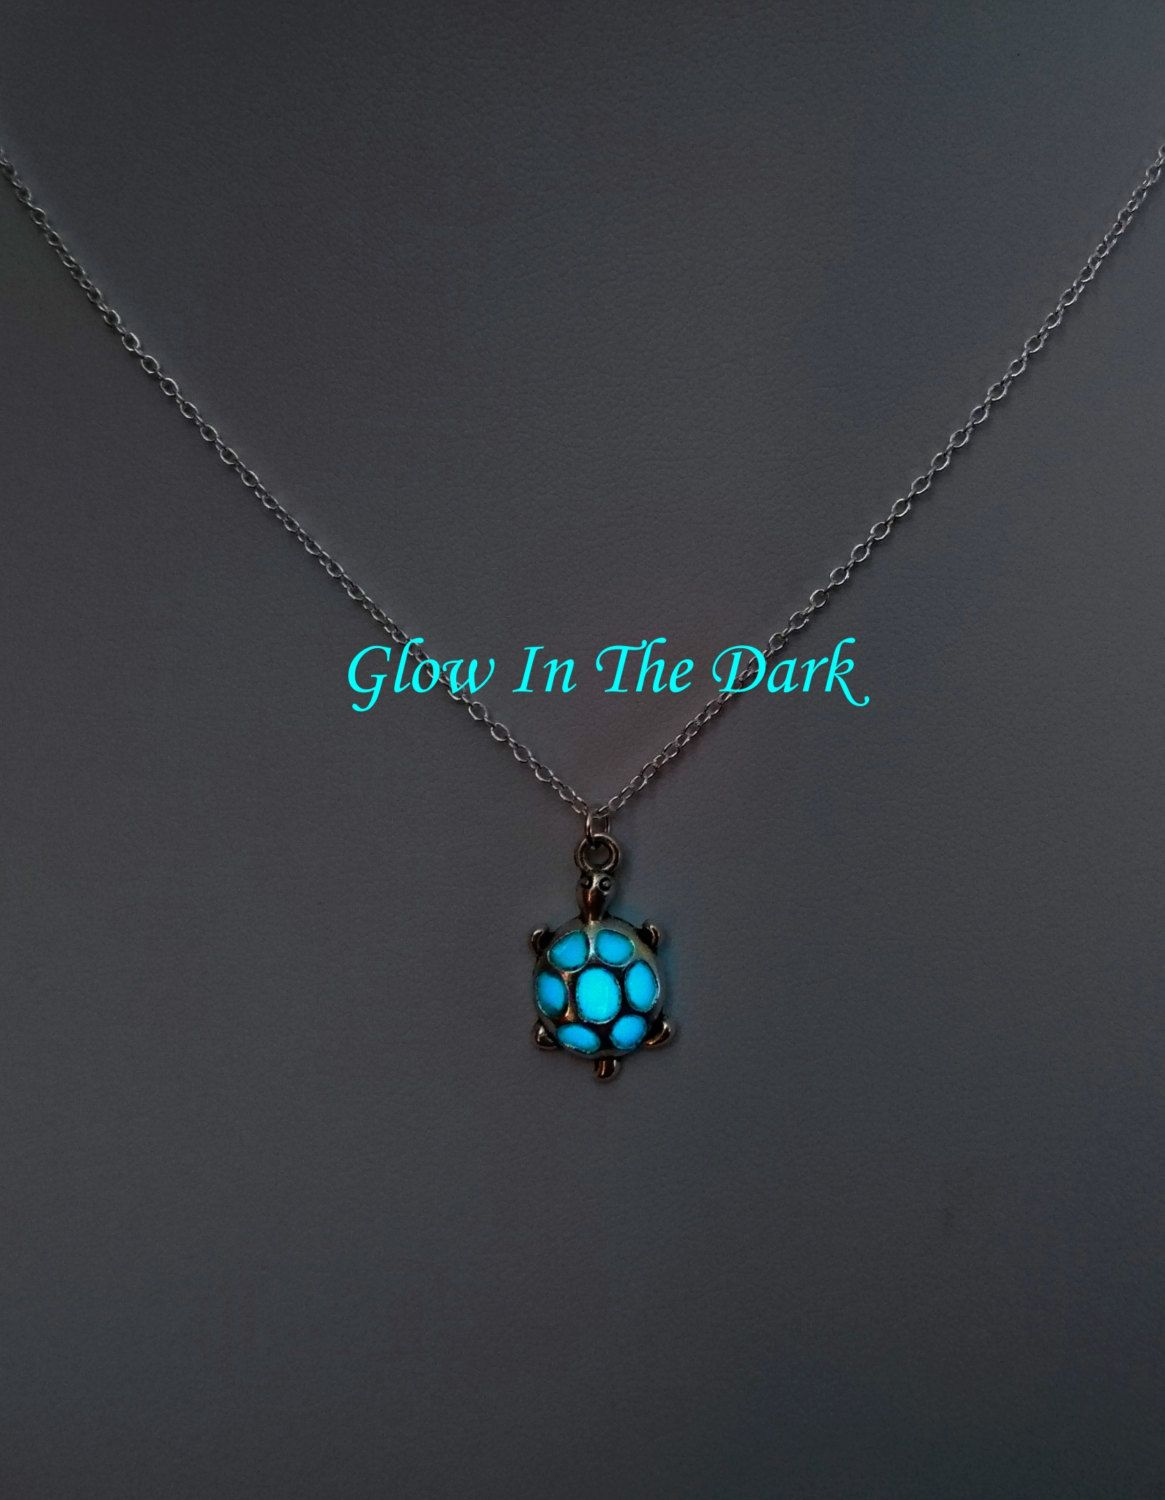 for women shop pendants shopping jewelry window in the glowing fashion dark glow wholesale heart necklace gifts